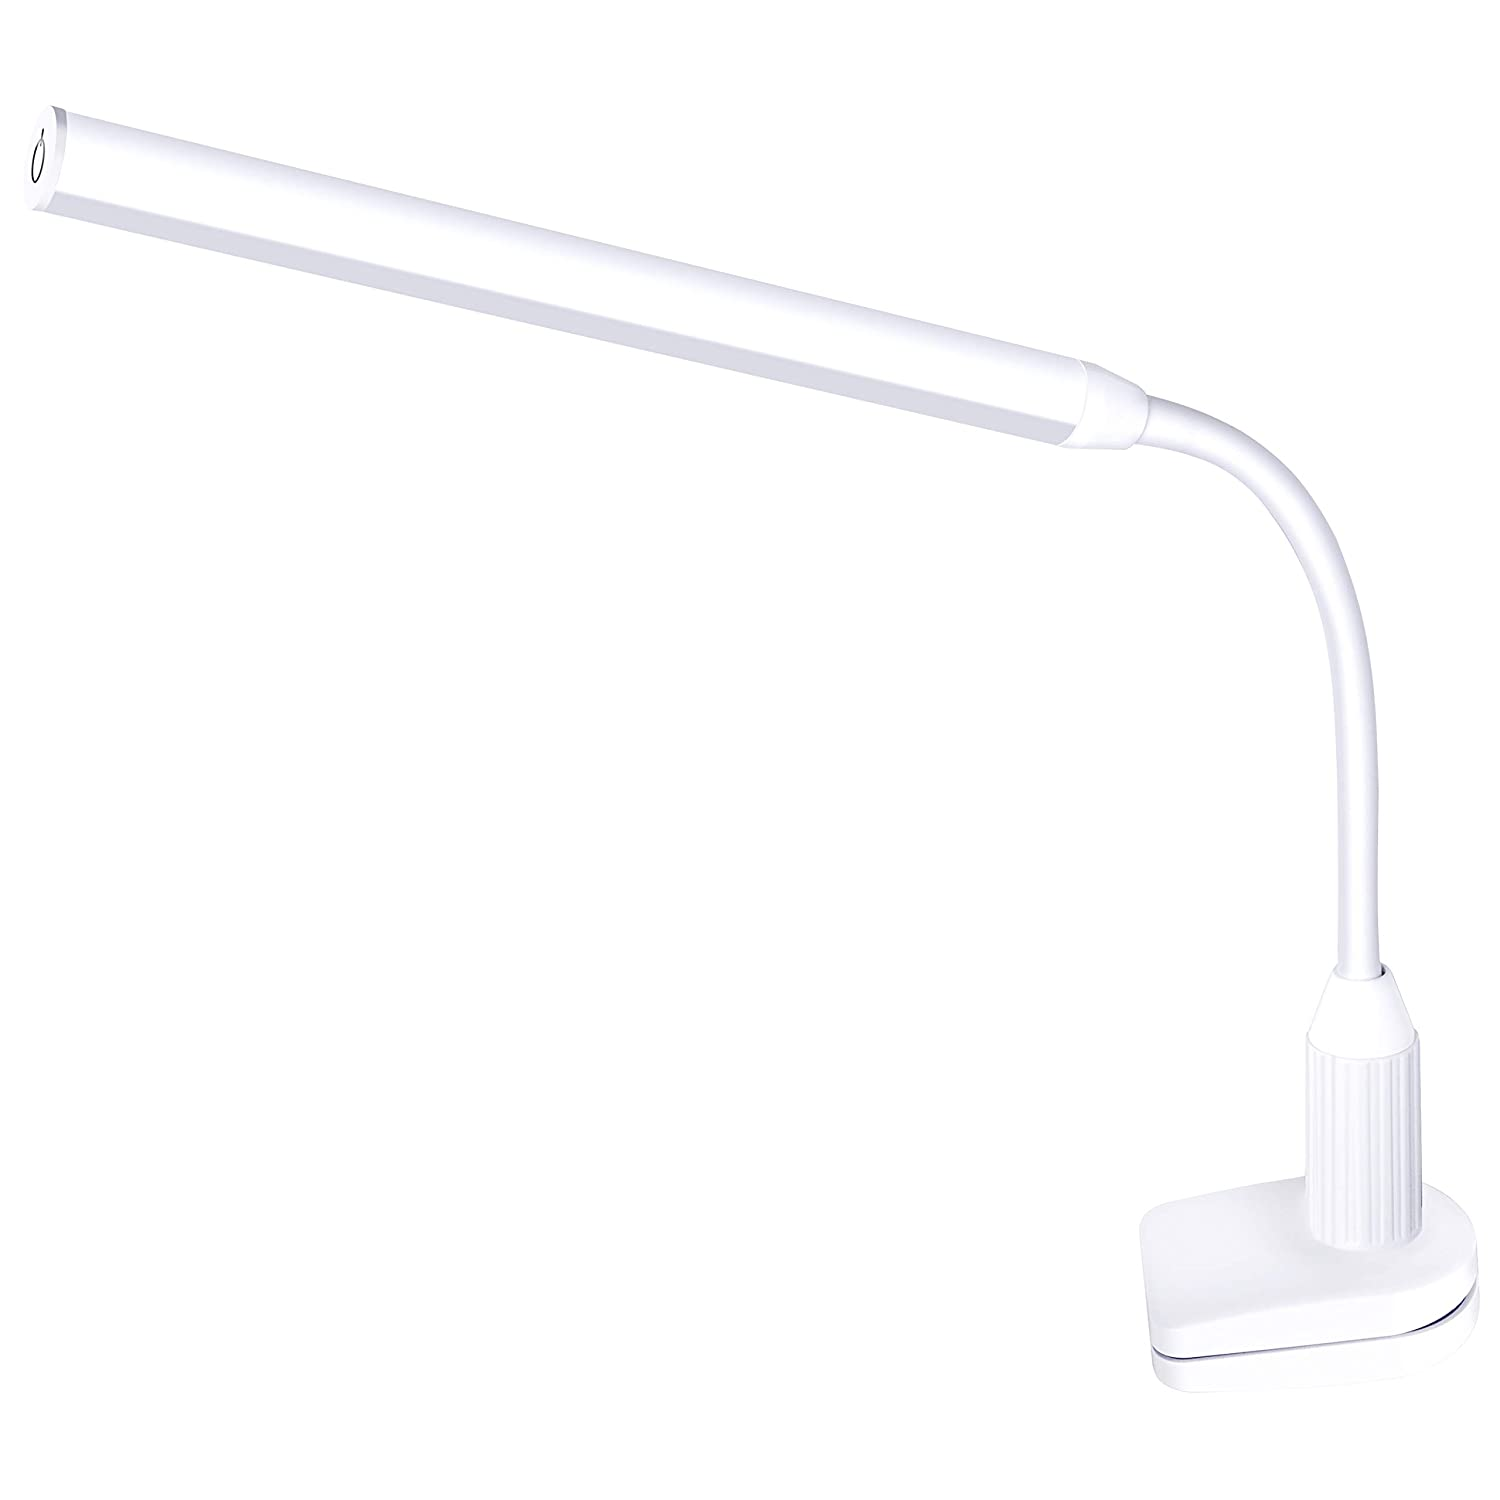 Amico LED Dimmable Flexible Gooseneck Clamp Desk Lamp 6W Eye-Care Touch Sensitive Light, Memory Function USB Charger